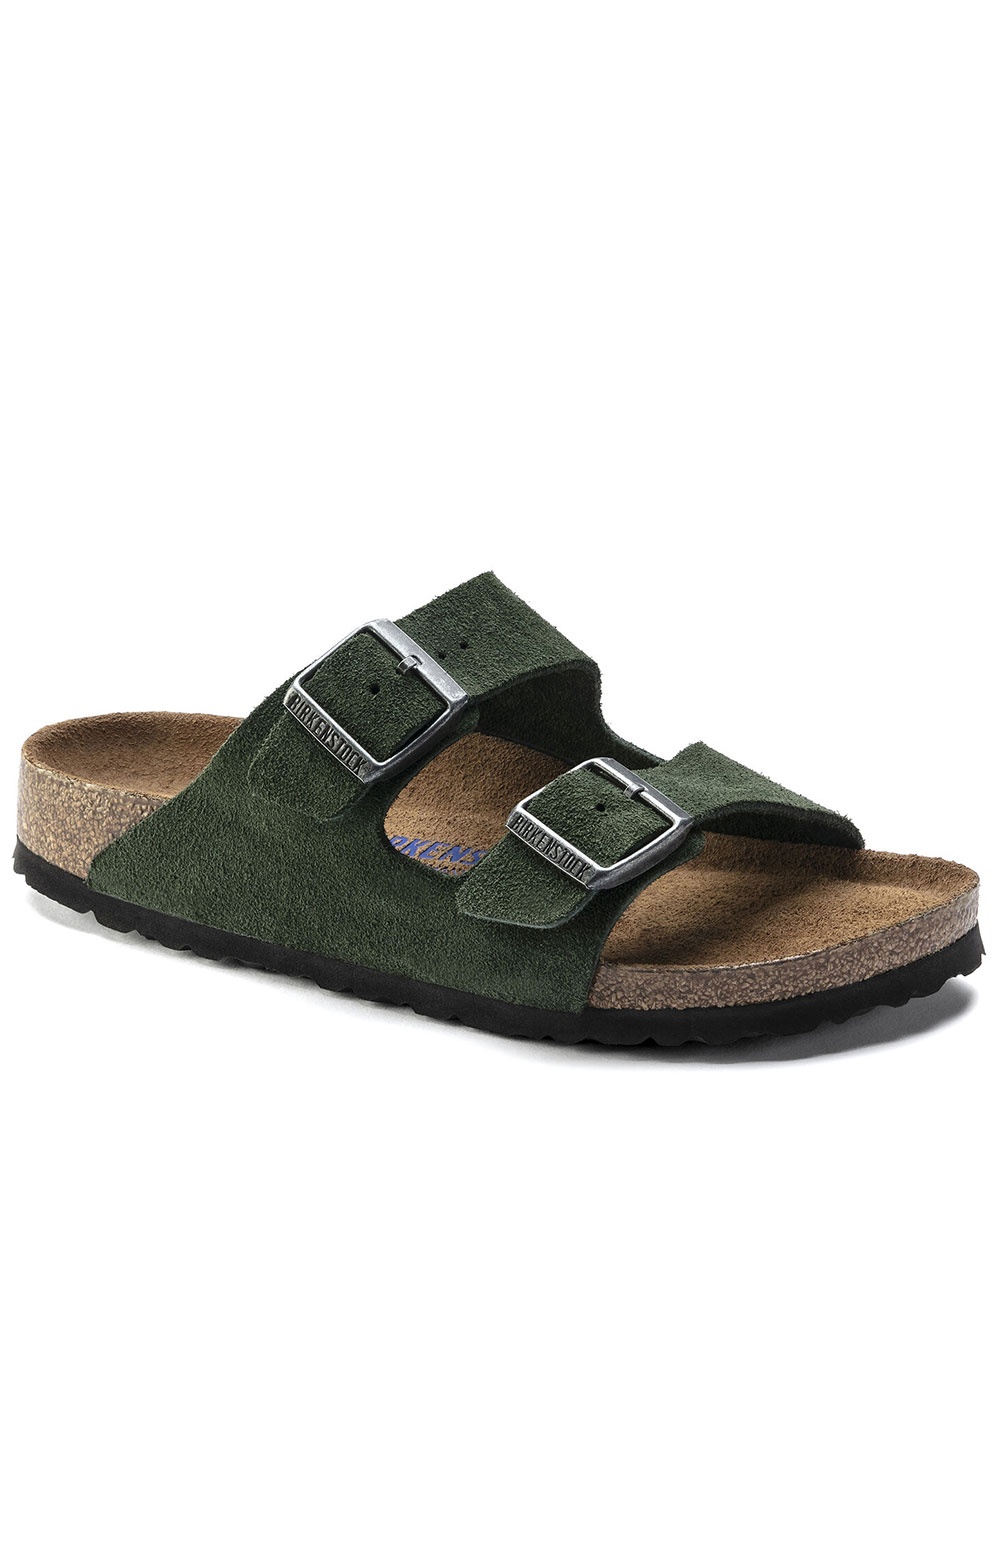 (1018143) Arizona Soft Footbed Sandals - Mountain View Green  2